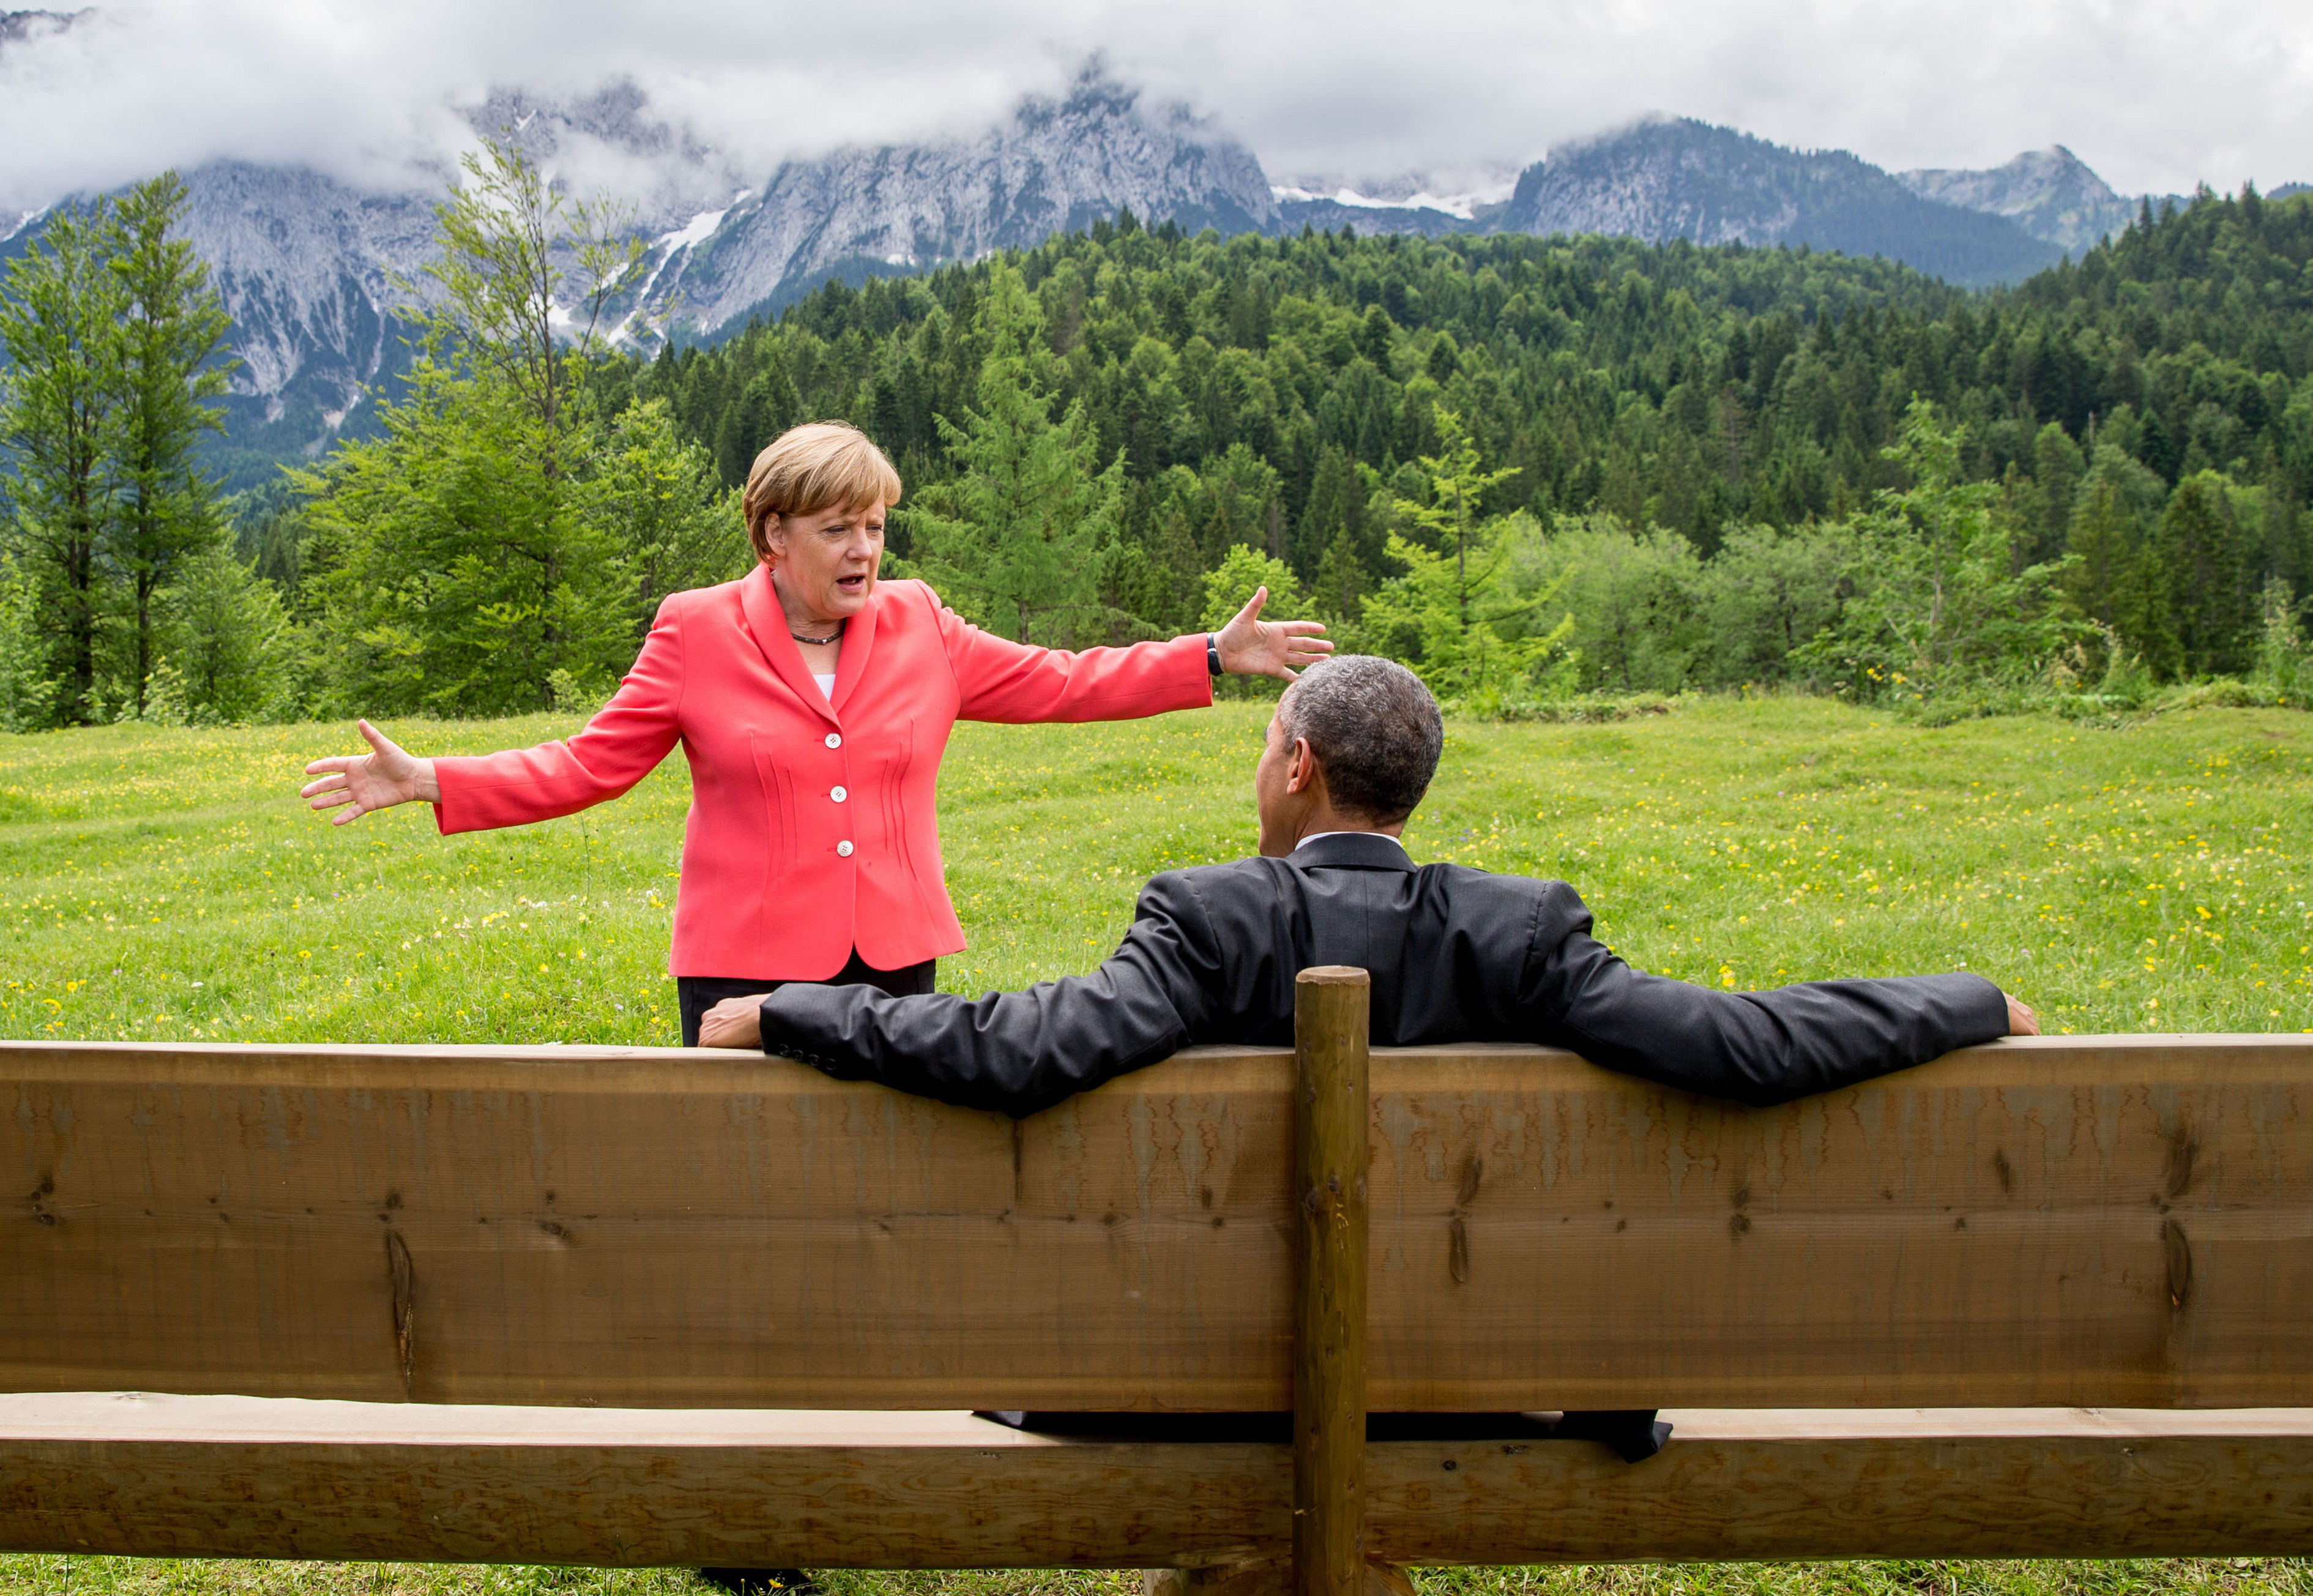 Germany's Chancellor Angela Merkel (L) gestures while chatting with US President Barack Obama sitting on a bench outside the Elmau Castle after a working session of a G7 summit near Garmisch-Partenkirchen, southern Germany, on June 8, 2015.